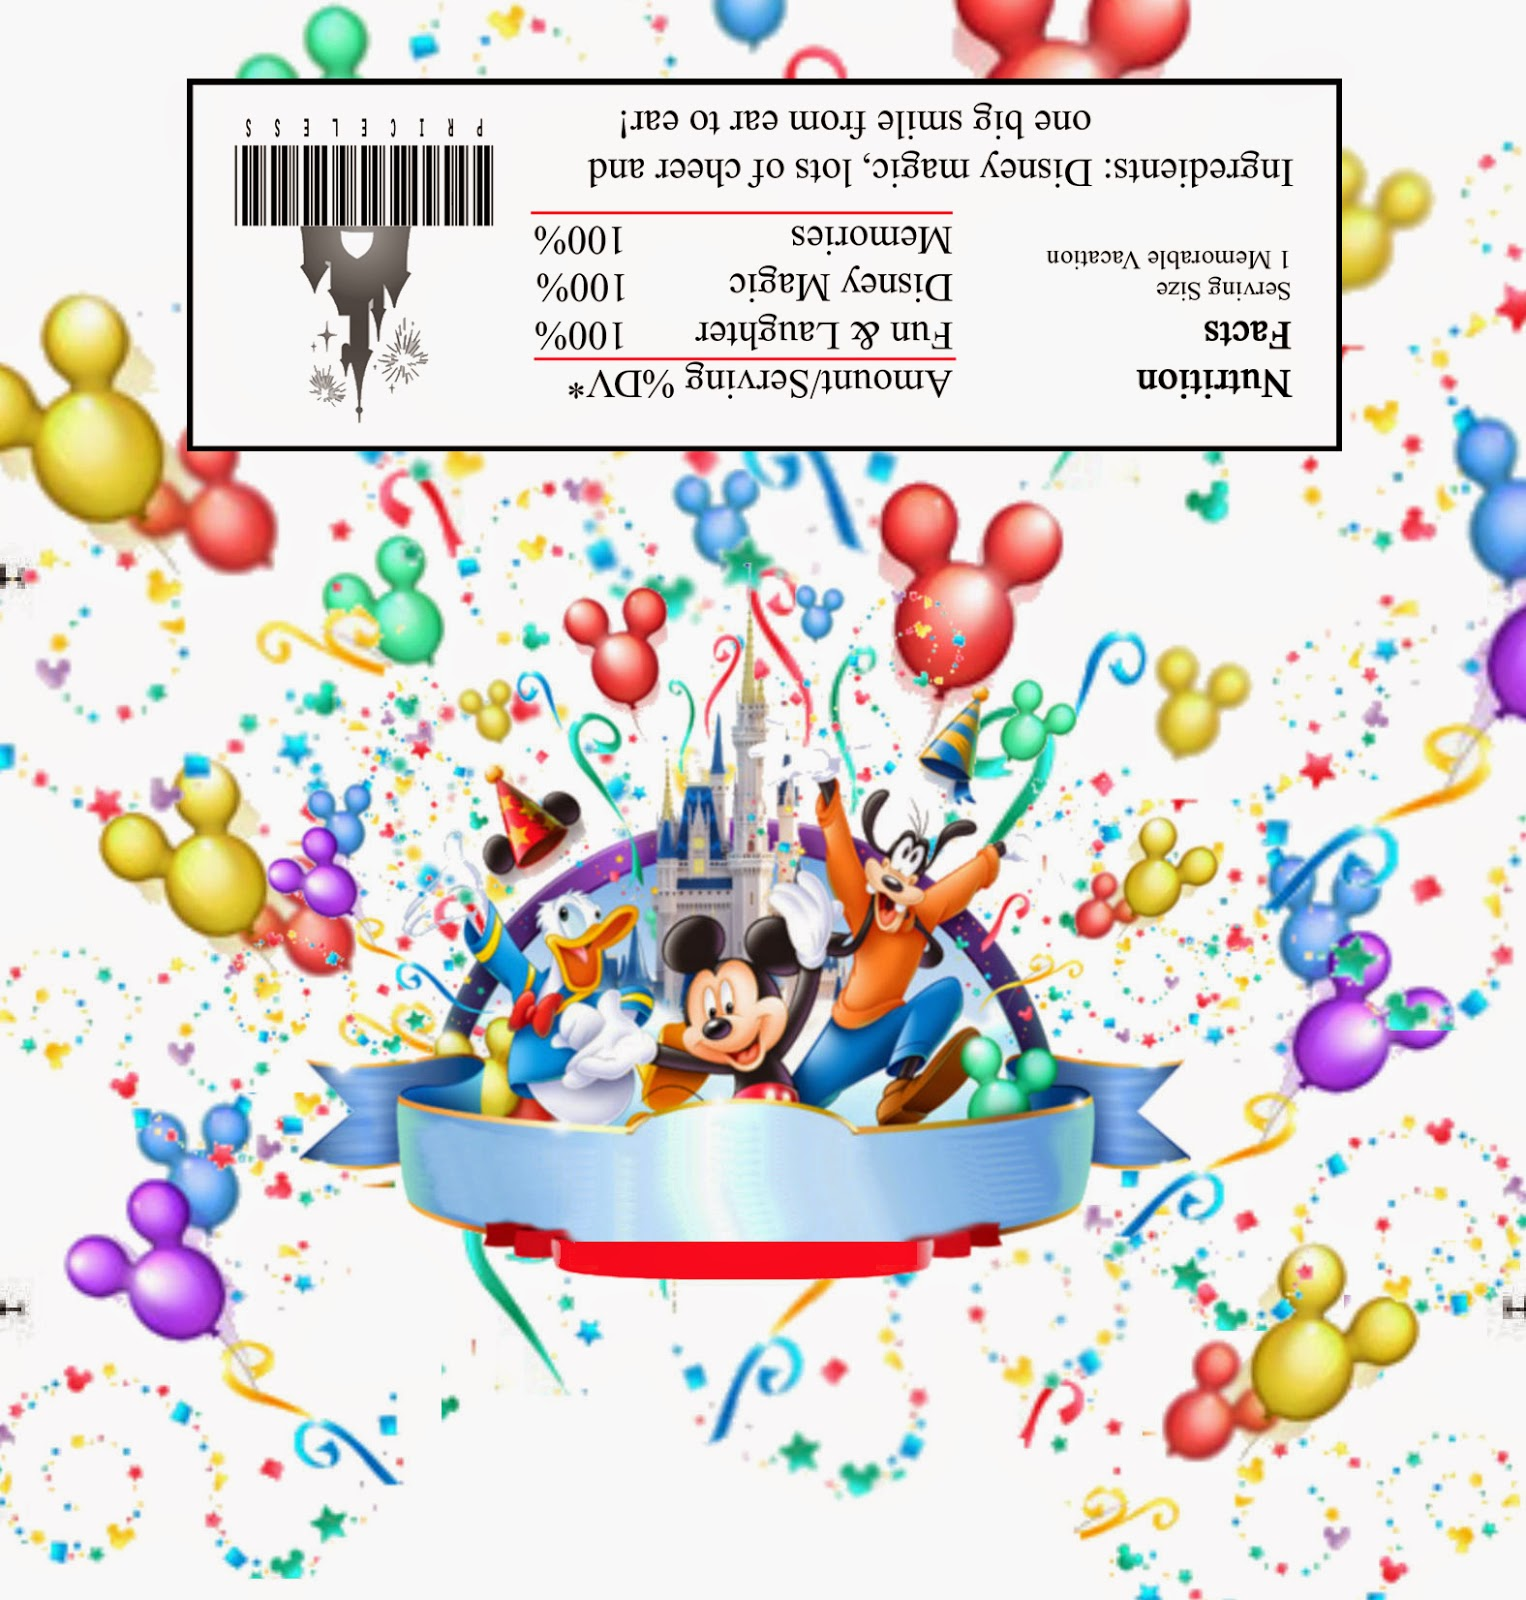 Free Printable Chocolate Wrapper of Mickey Mouse, Donald Duck and Goofy.